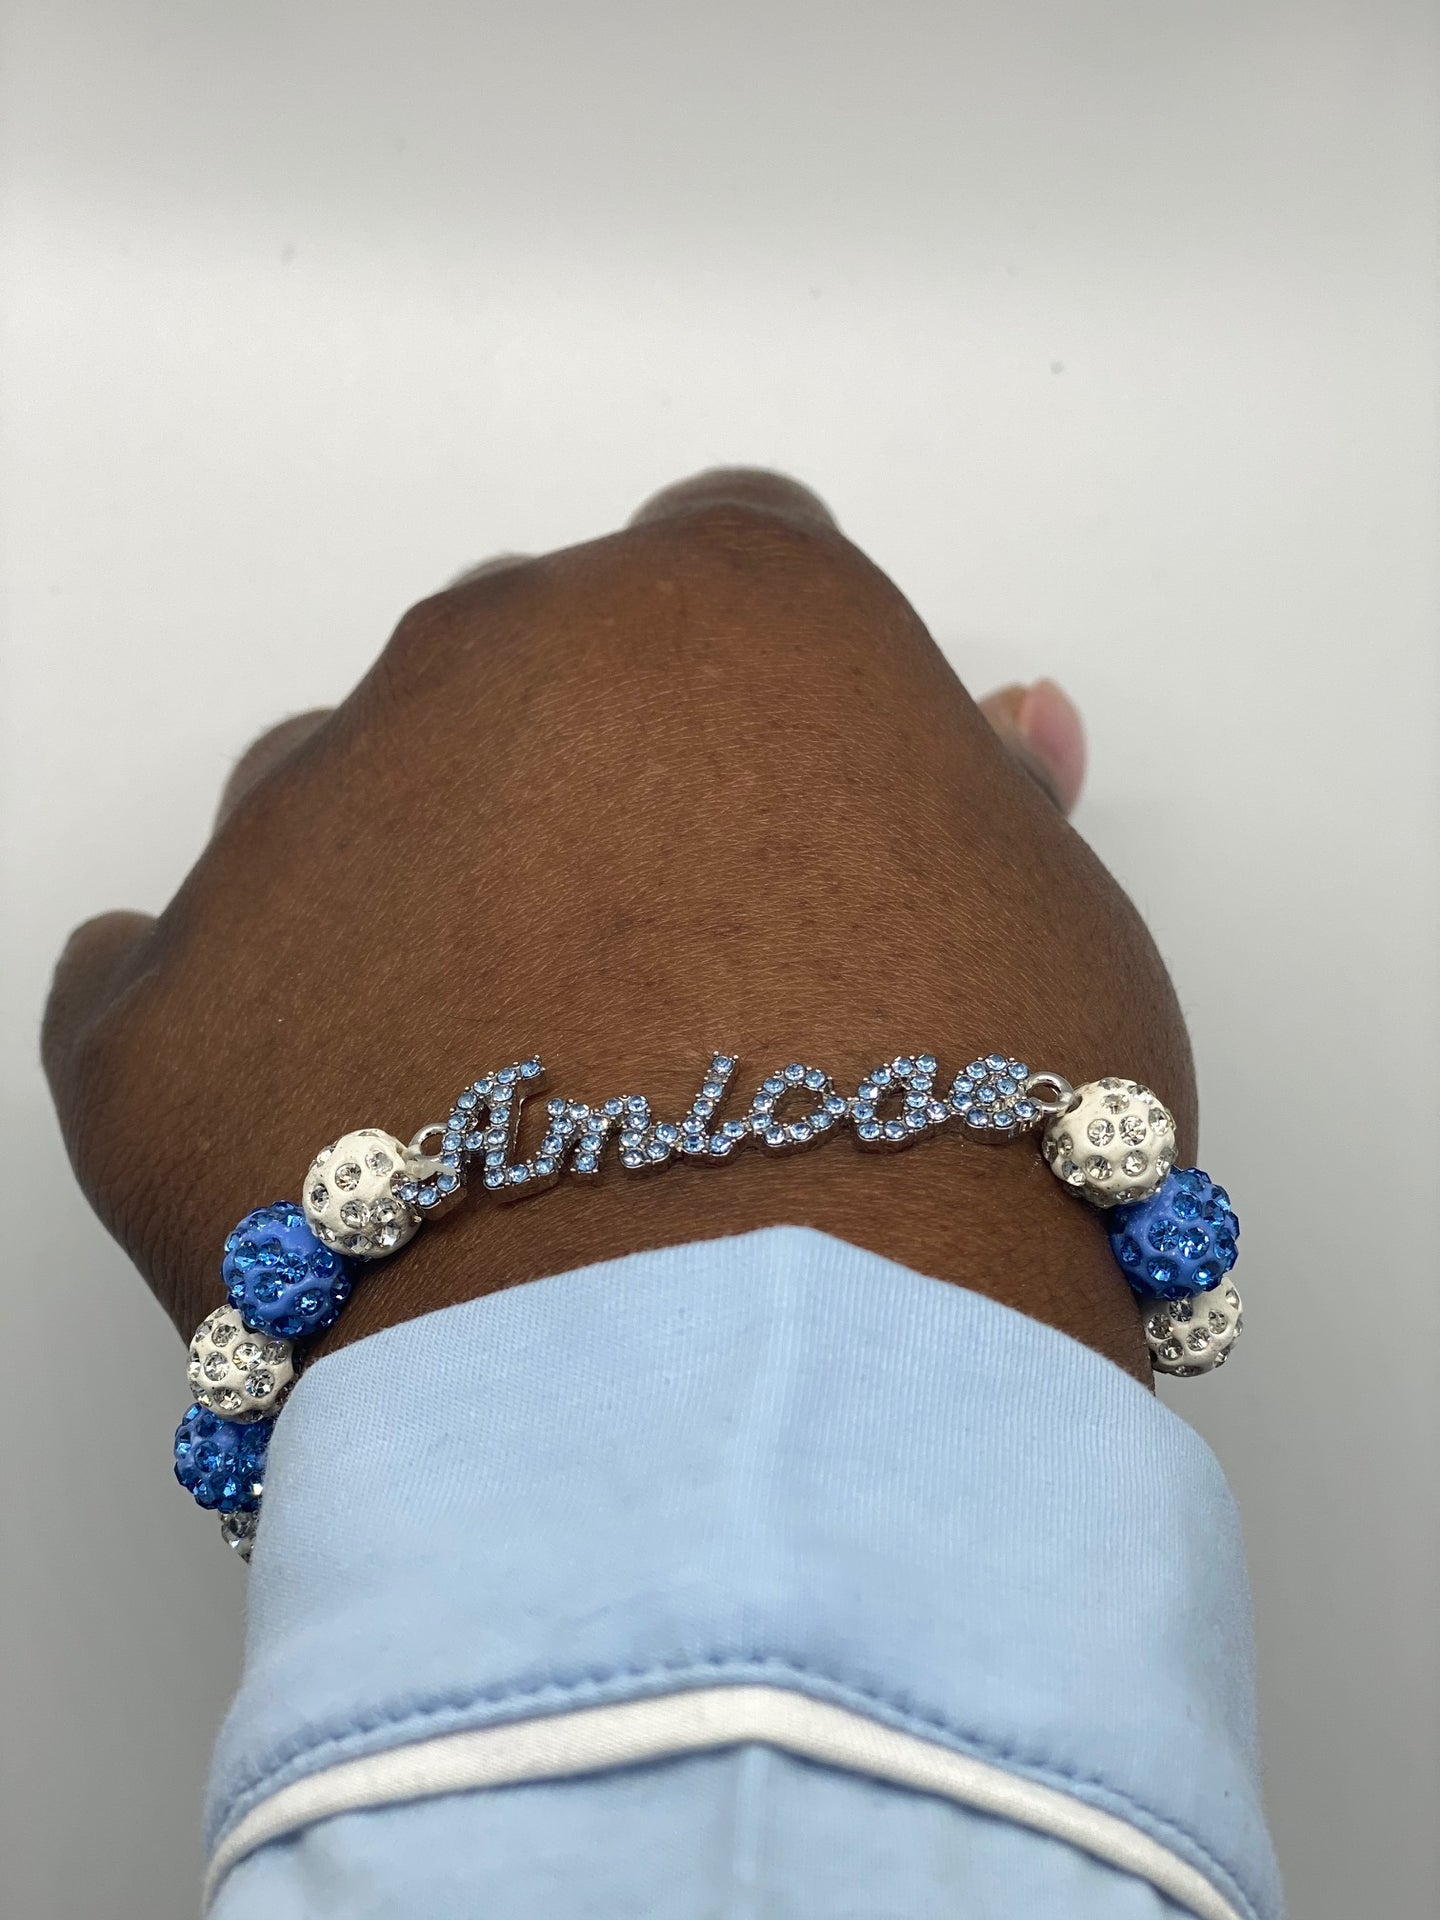 Amicae Bling Bracelet | The Finer Things 1920